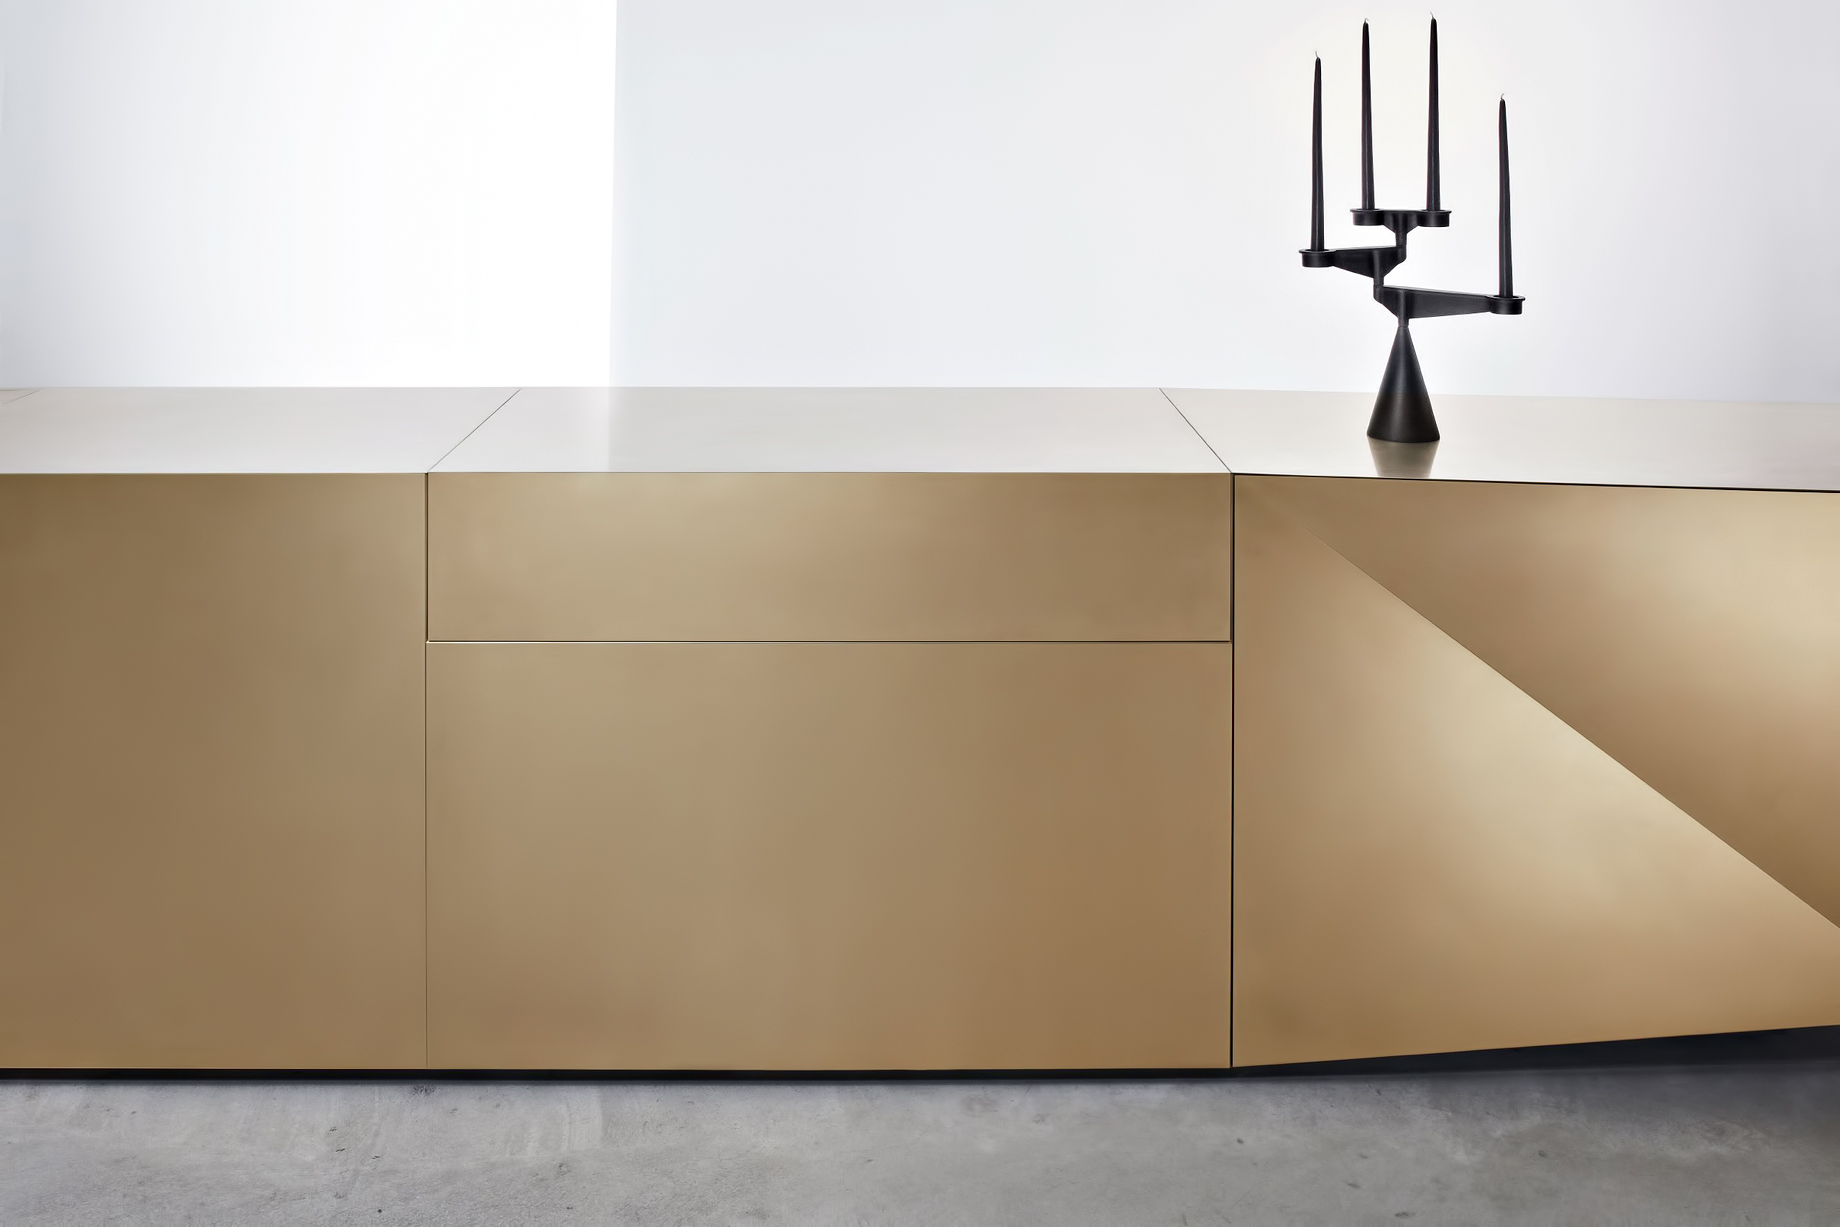 Iconic Steininger FOLD High Tech Kitchen Block Design Inspired by Origami - Hob extractor closed with actuation via motion sensor